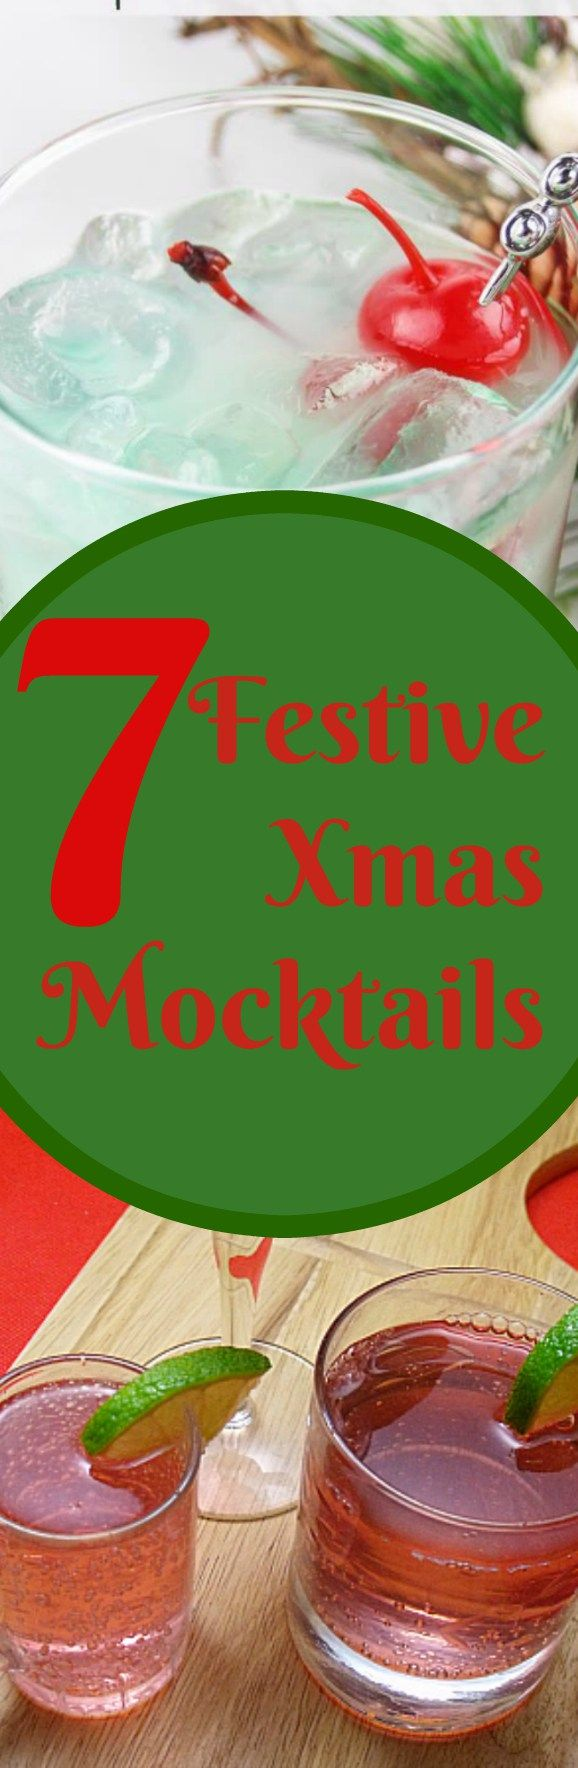 7 Delicious Christmas Mocktails.  Wonderful party drink recipes without the alcohol!